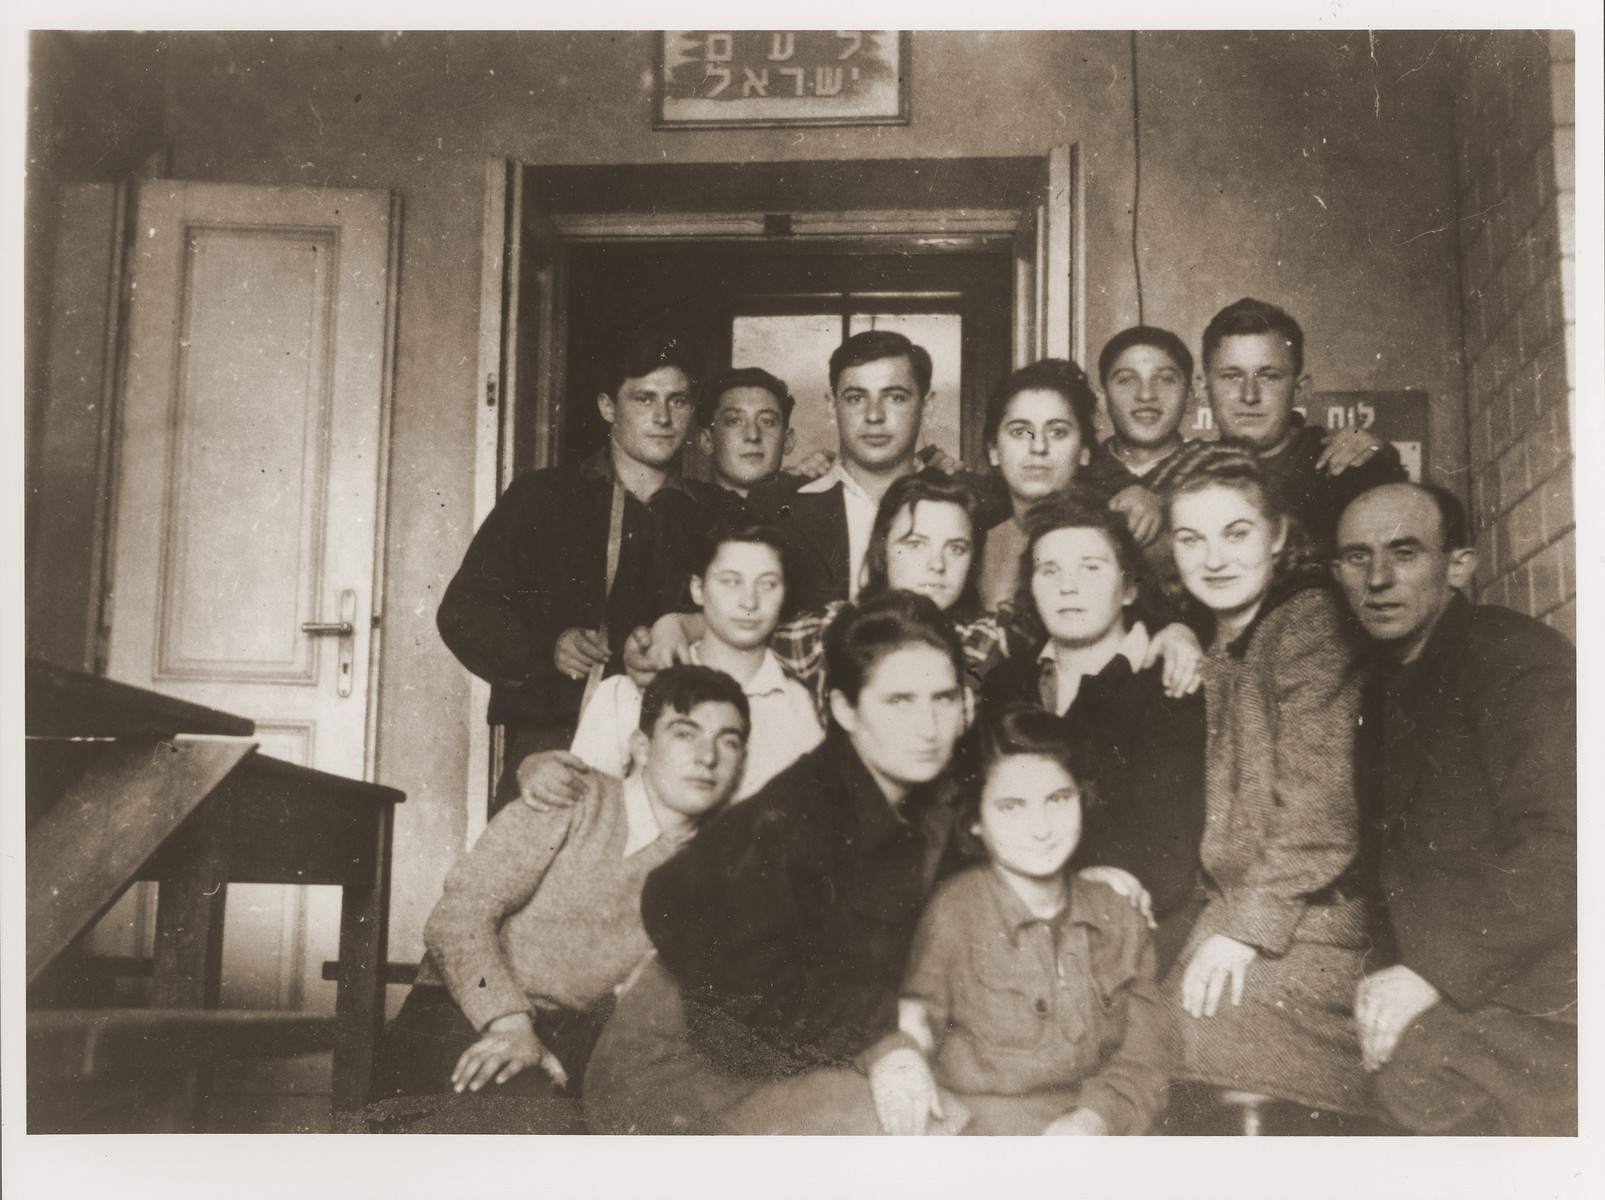 Members of the Kibbutz Ichud hachshara at their headquarters in Warsaw.